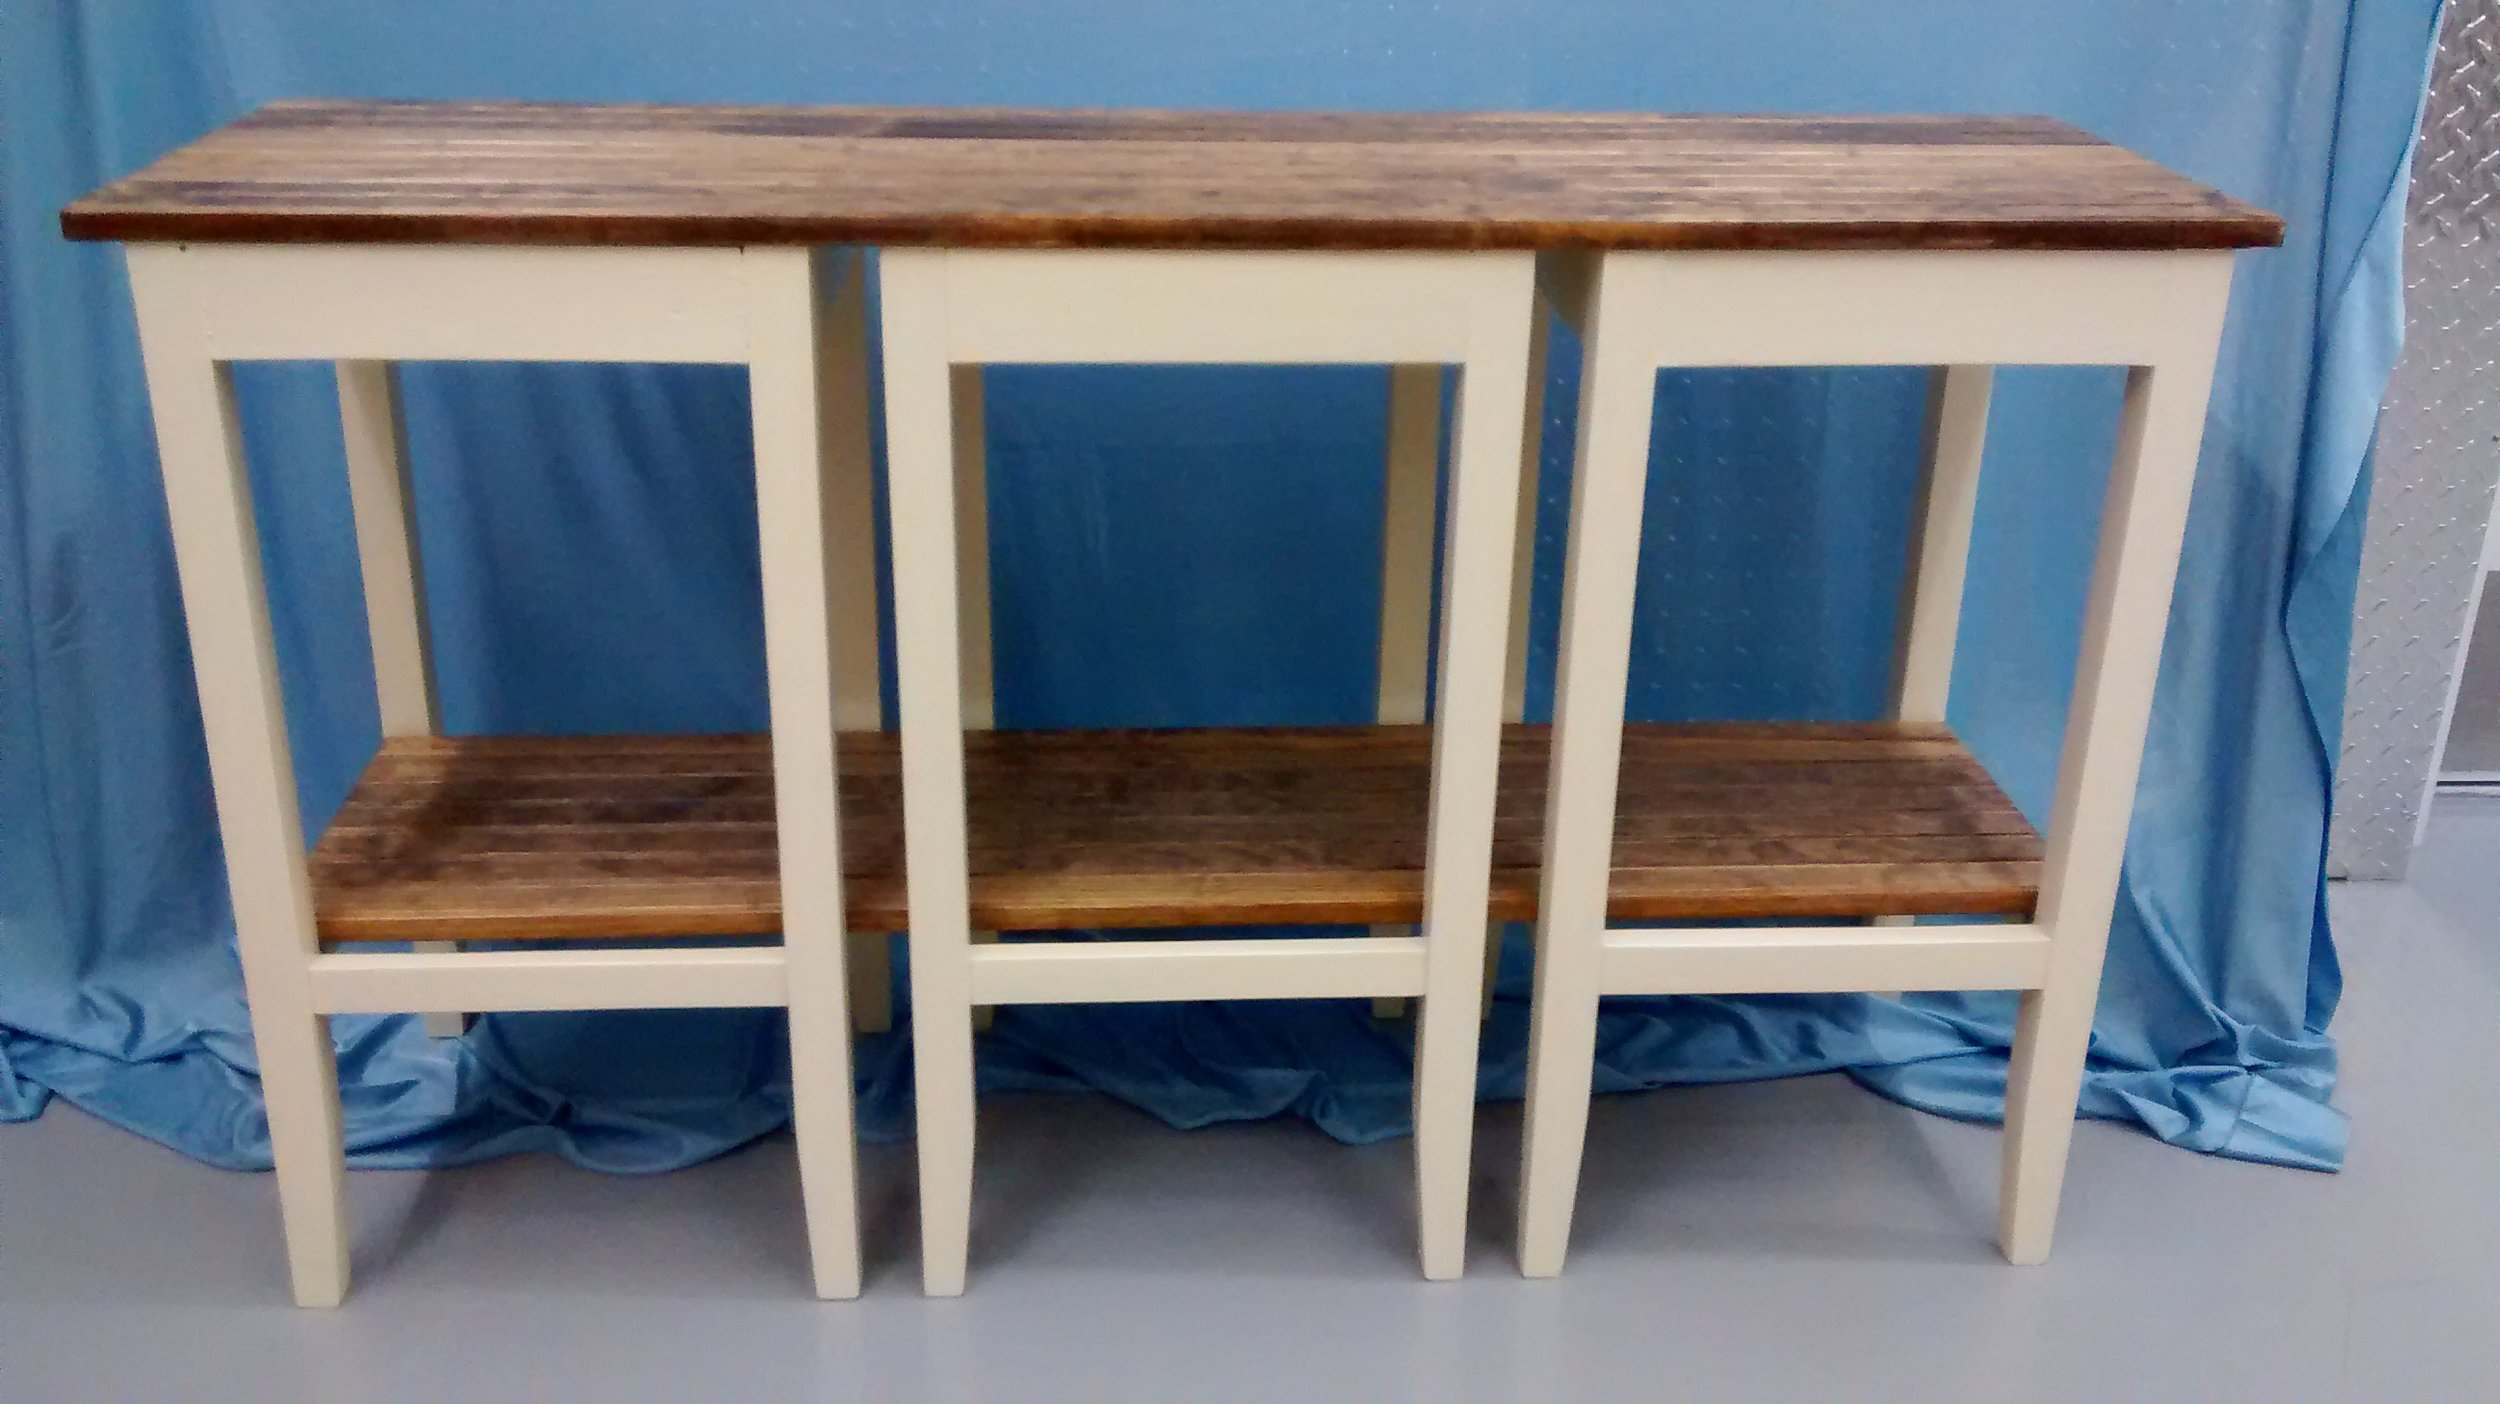 Console or Side Table Made from Three Wooden Bar Stools